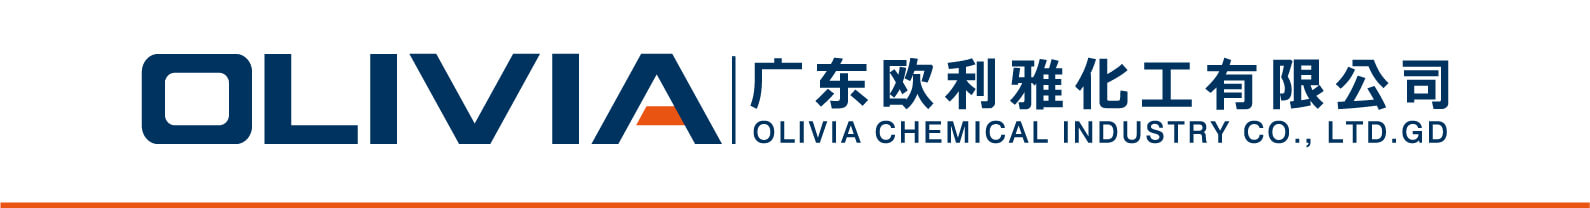 GUANGDONG OLIVIA CHEMICAL INDUSTRY CO , LTD  The 25th Window Door